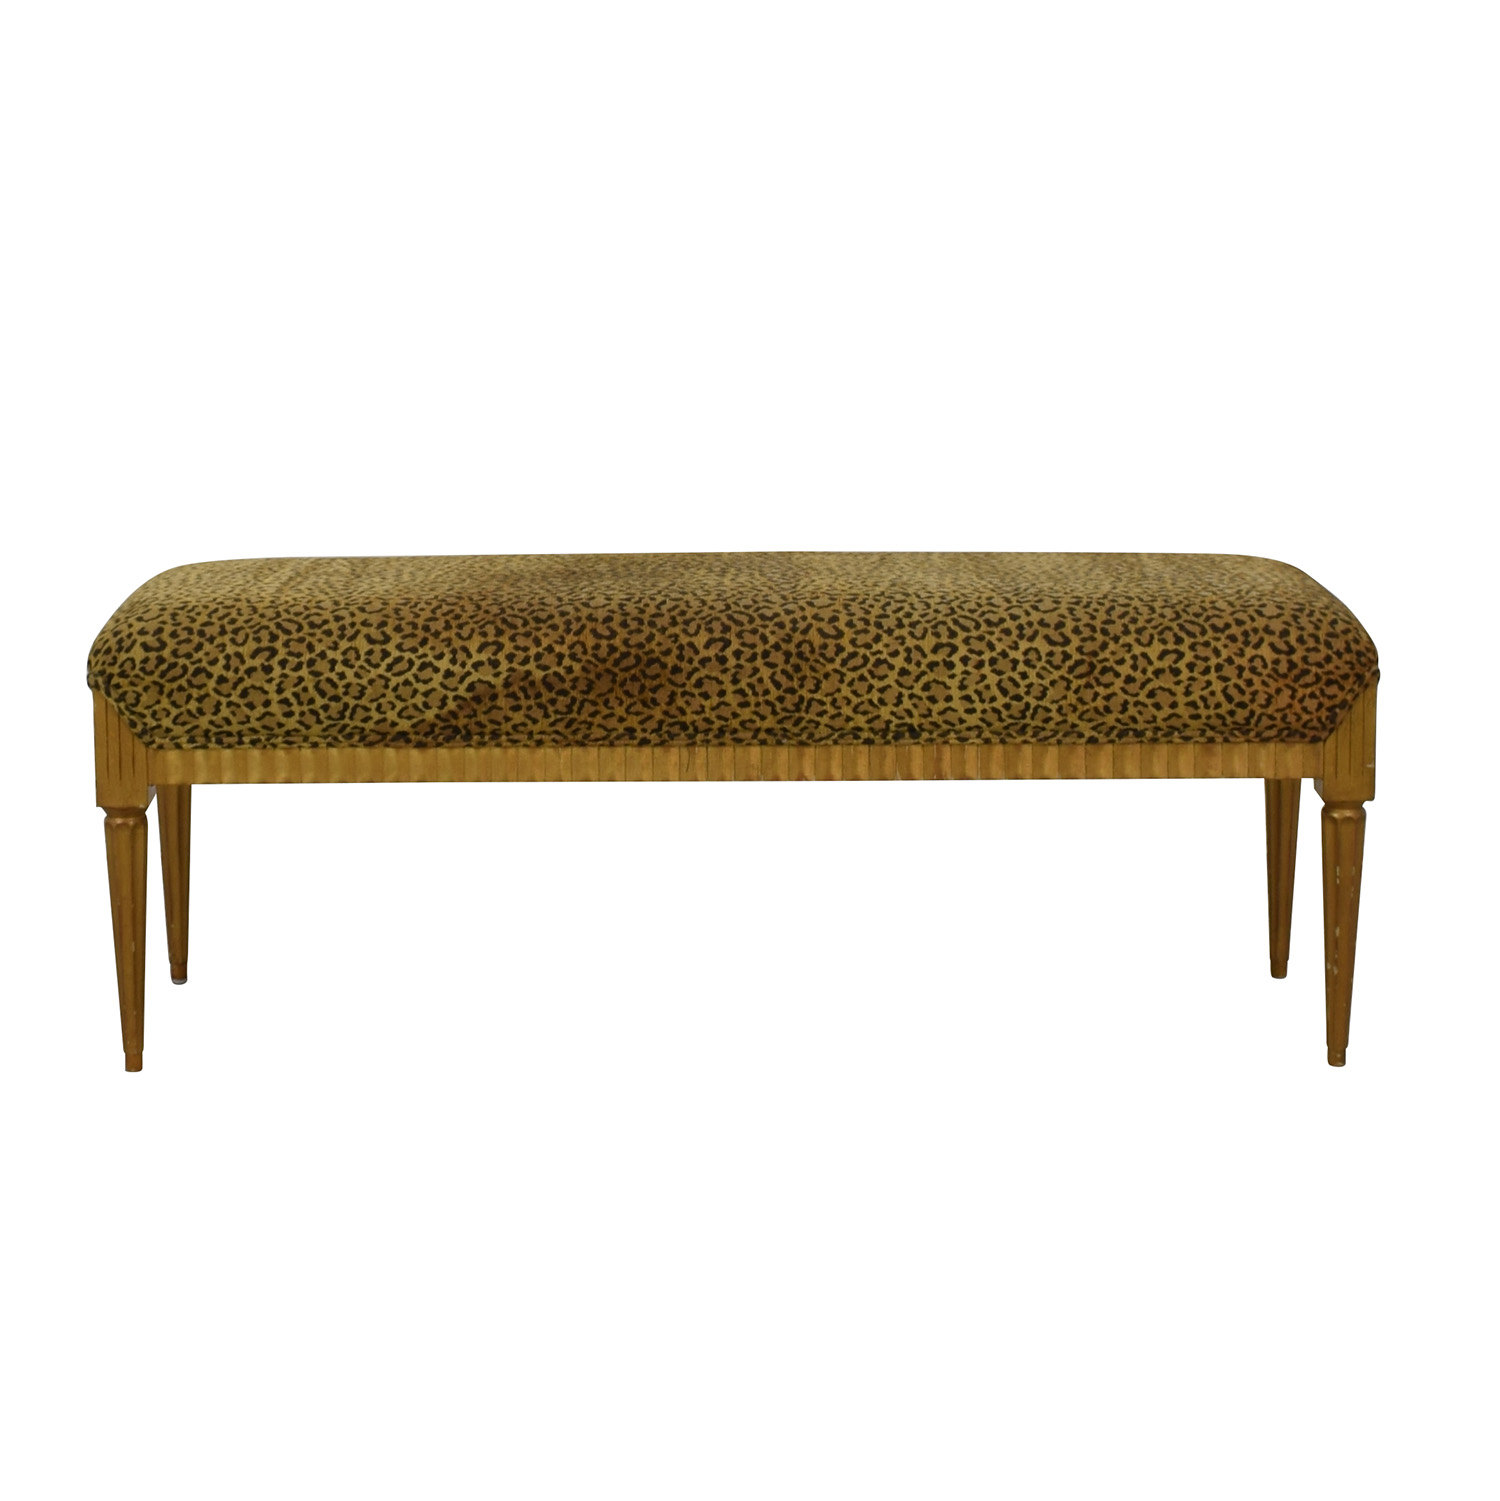 71% OFF   Furniture Masters Furniture Masters Leopard Print Bench / Chairs